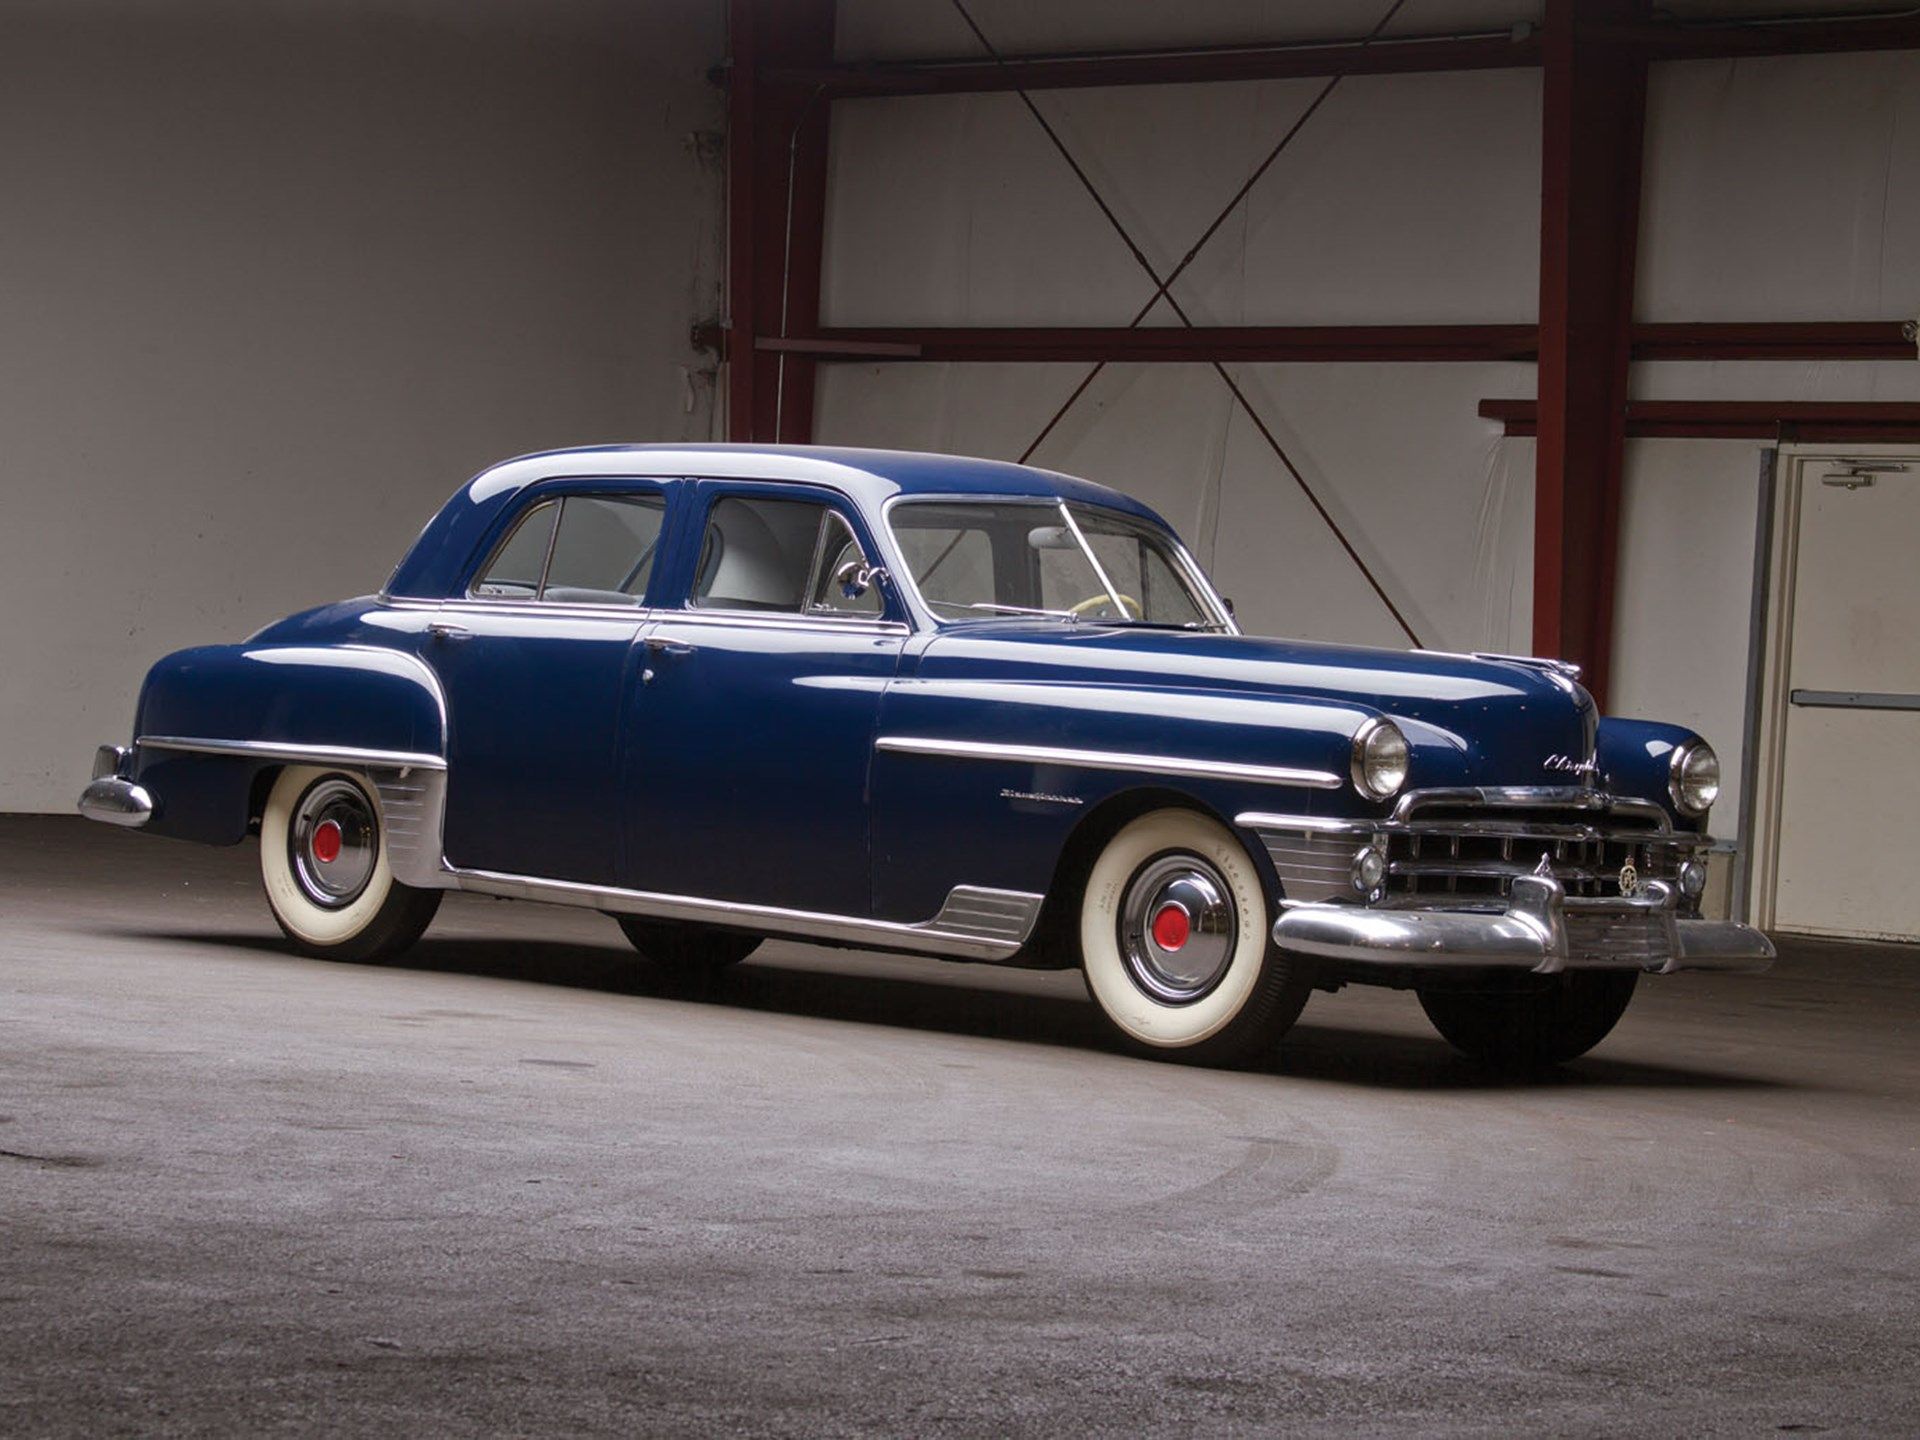 By 1950 Chrysler Had Once Again Emerged As One Of The Automotive Manufacturing Powerhouses Their Line Was Diverse Chrysler New Yorker Chrysler Chrysler Cars